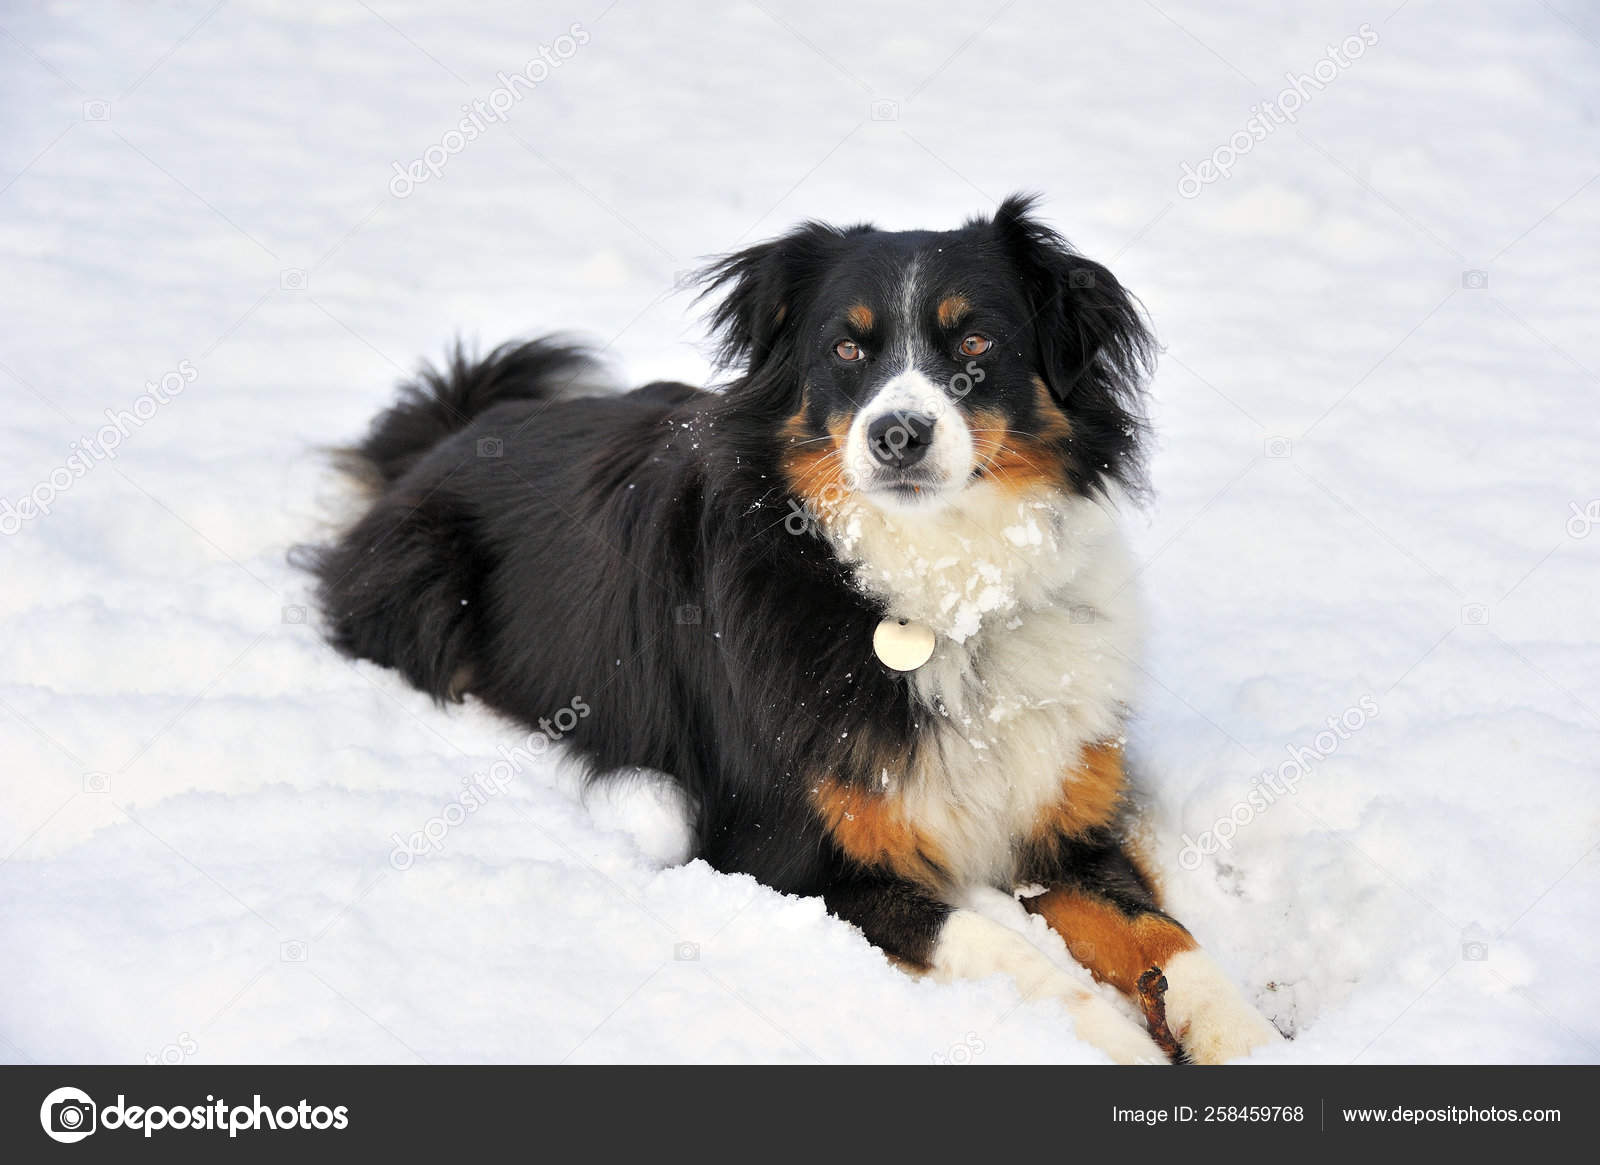 Dog Cross Border Collie Appenzell Breed Lying Snow Spyce